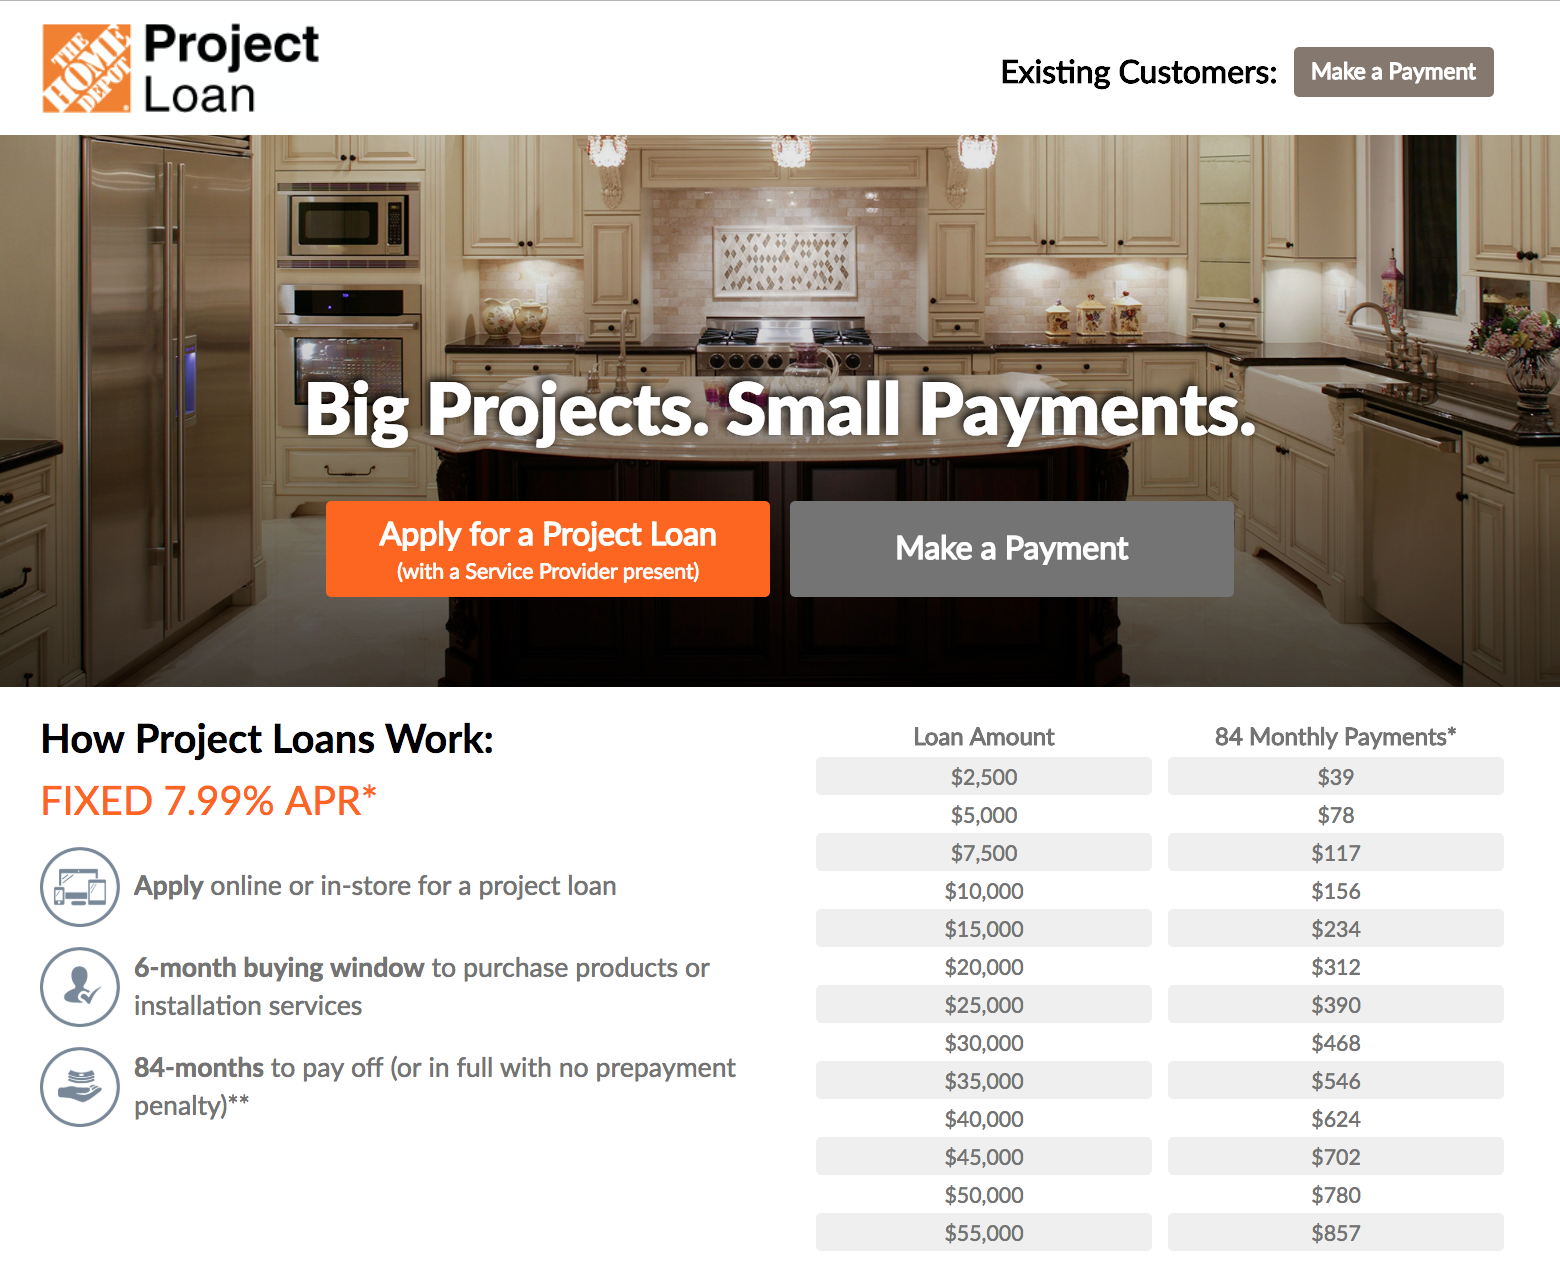 Home Depot Project Loan